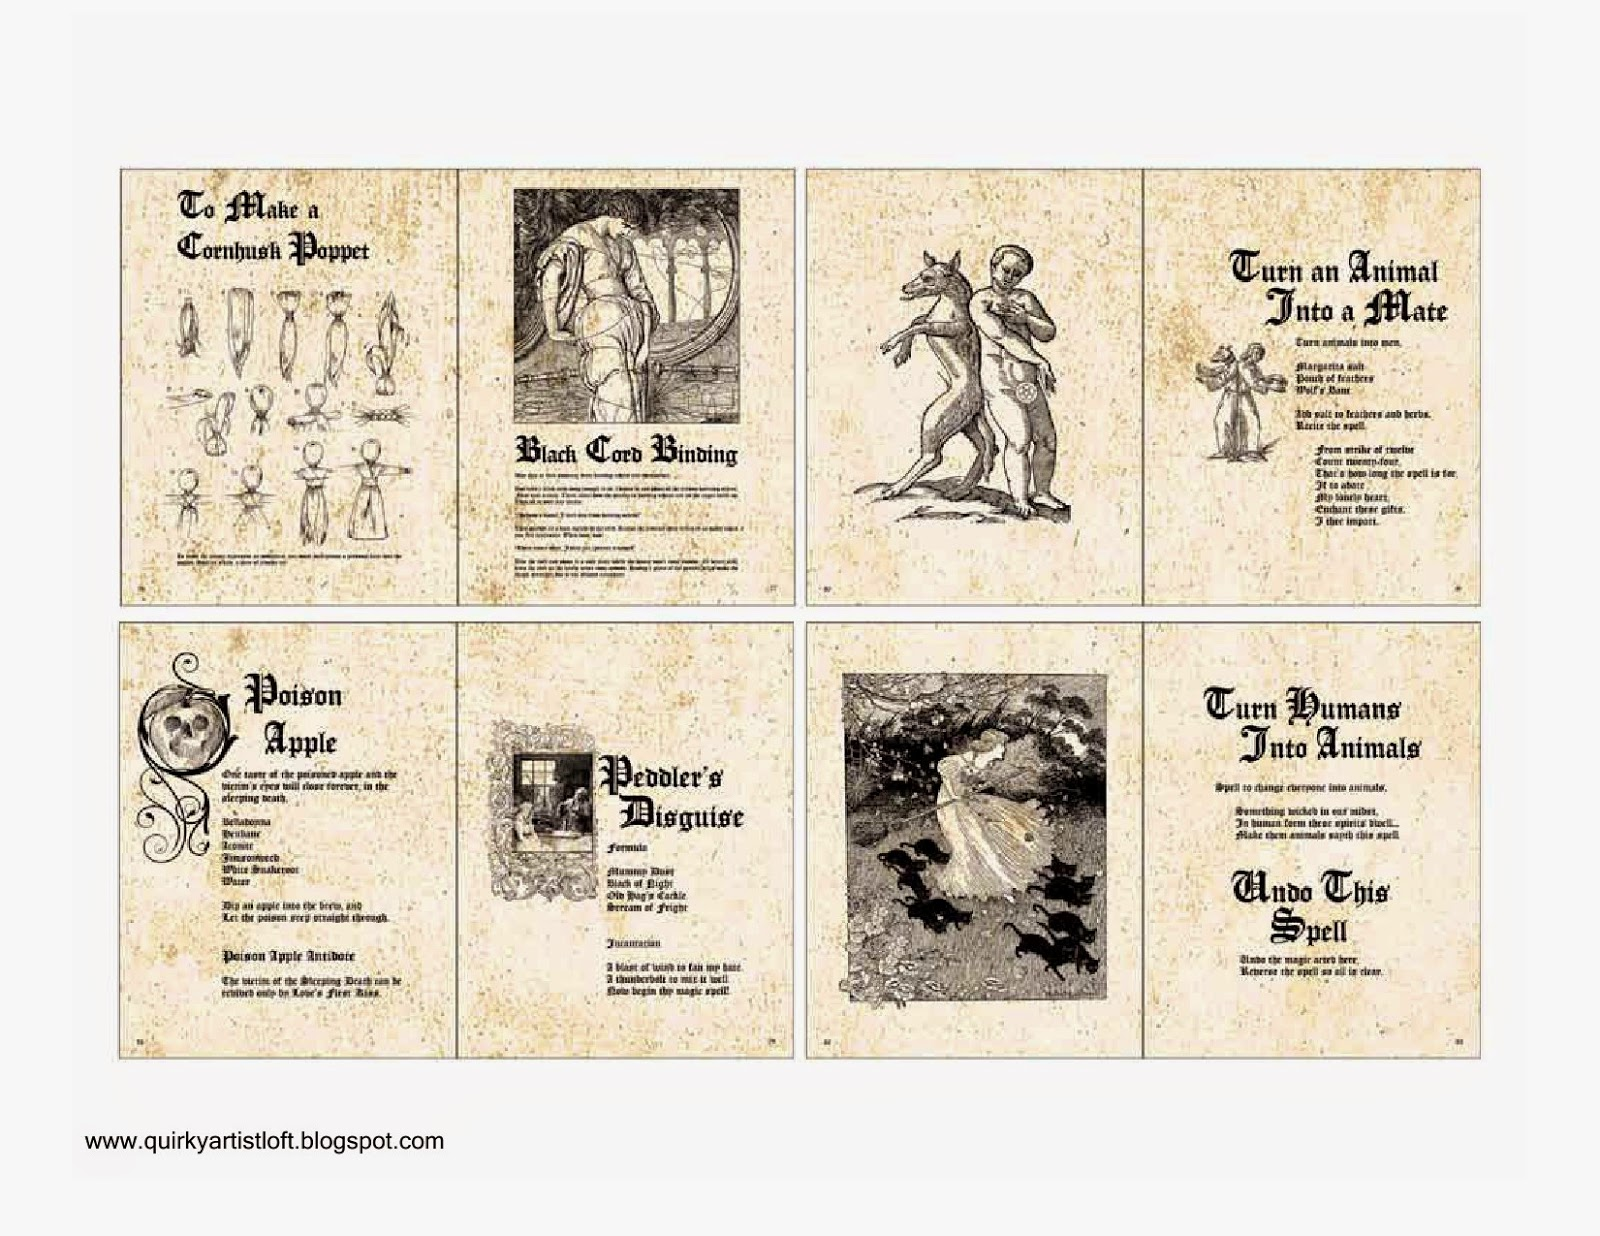 image relating to Harry Potter Spell Book Printable named Quirky Artist Loft: Absolutely free Printable Doll Spell E book